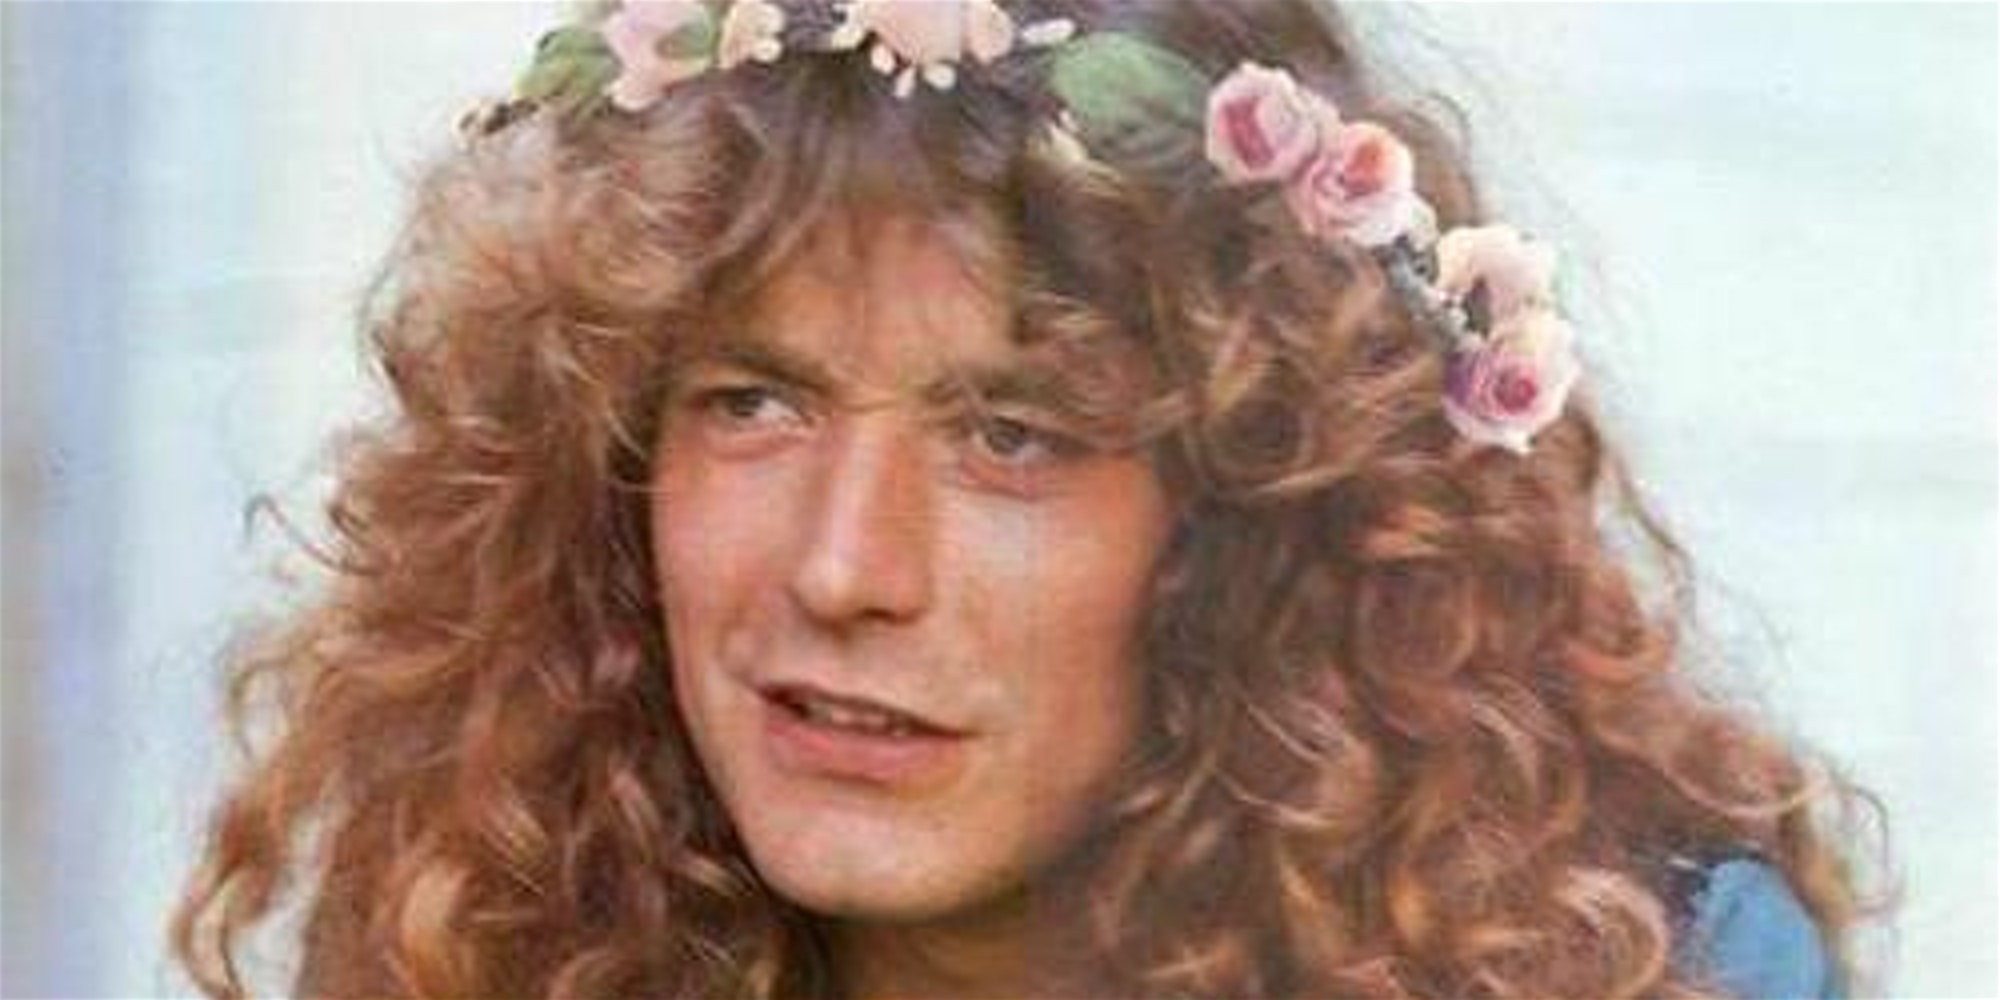 Promo image of Robert Plant's Birthday Party – The Battle of Evermore